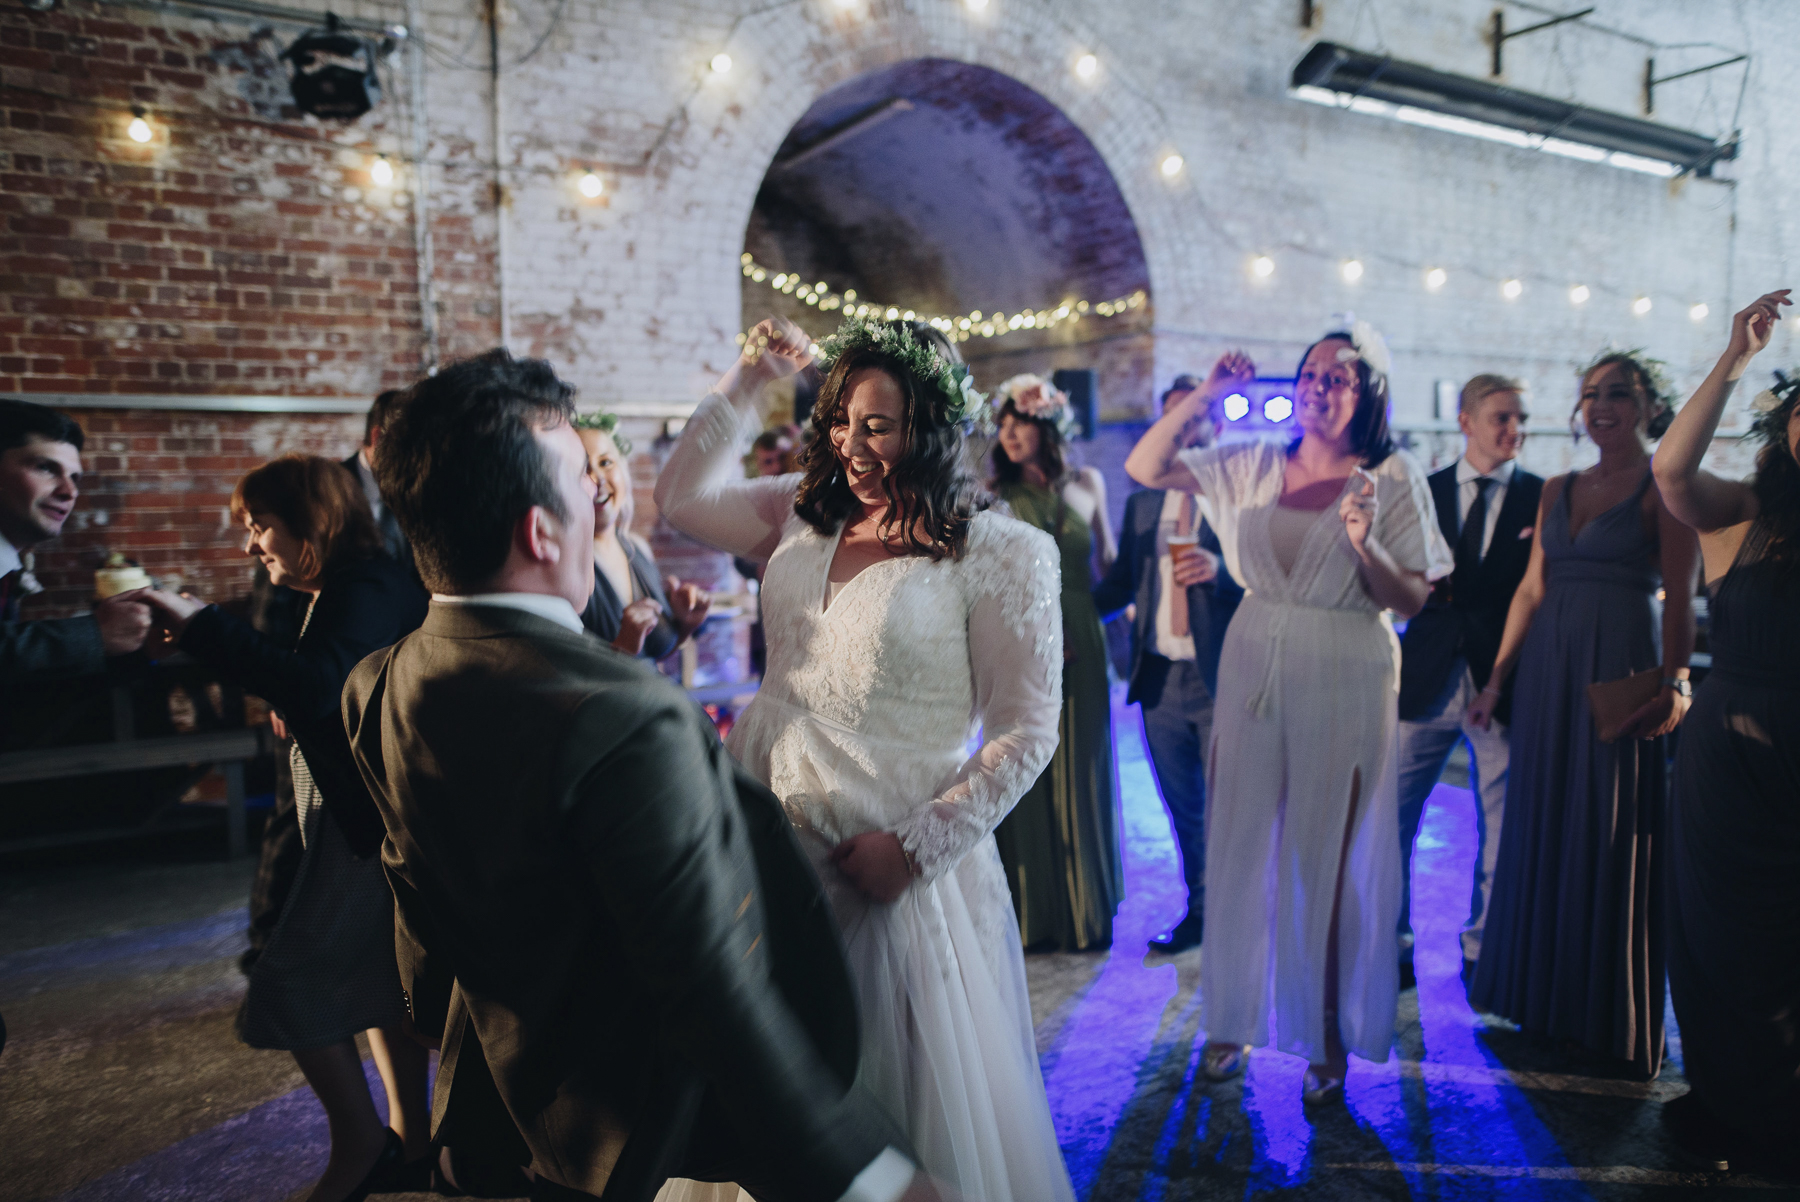 Alternative_Manchester_Wedding_Photography_The_Pin-Up_Bride_Photography-24.jpg